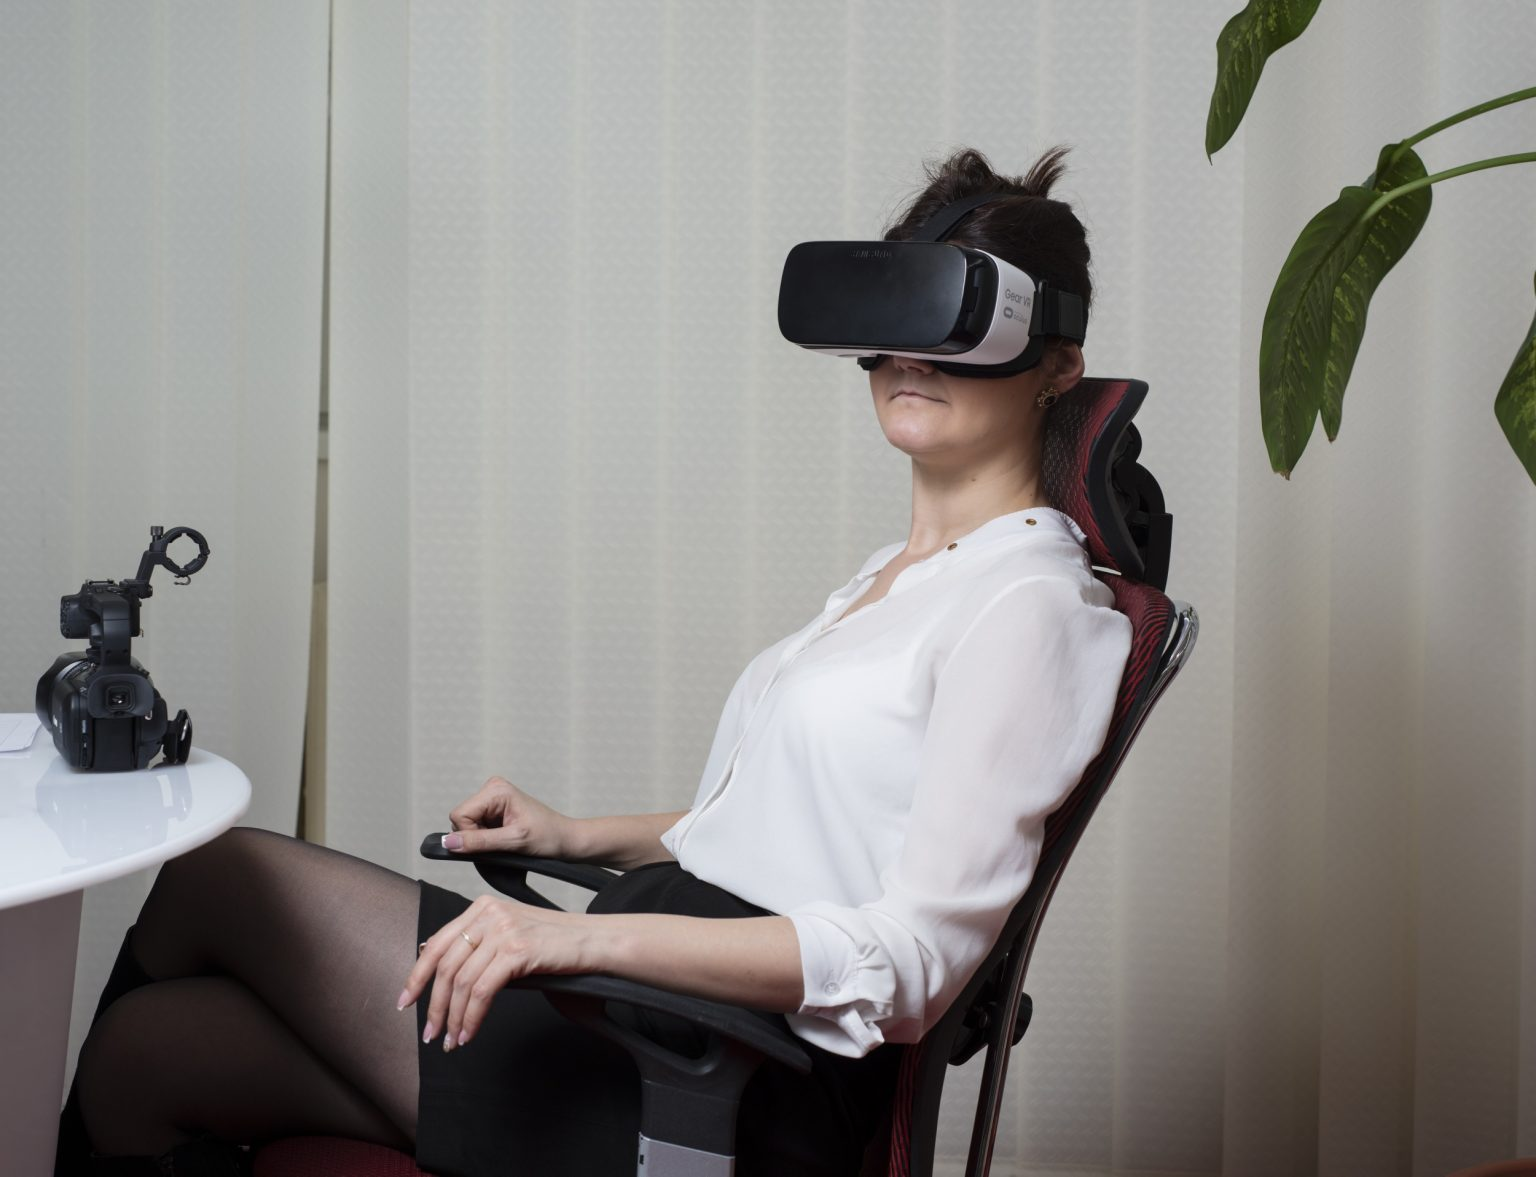 """Pc operator in the office of the """"Studio 20"""" checking the work of a cam model in the virtual reality room."""